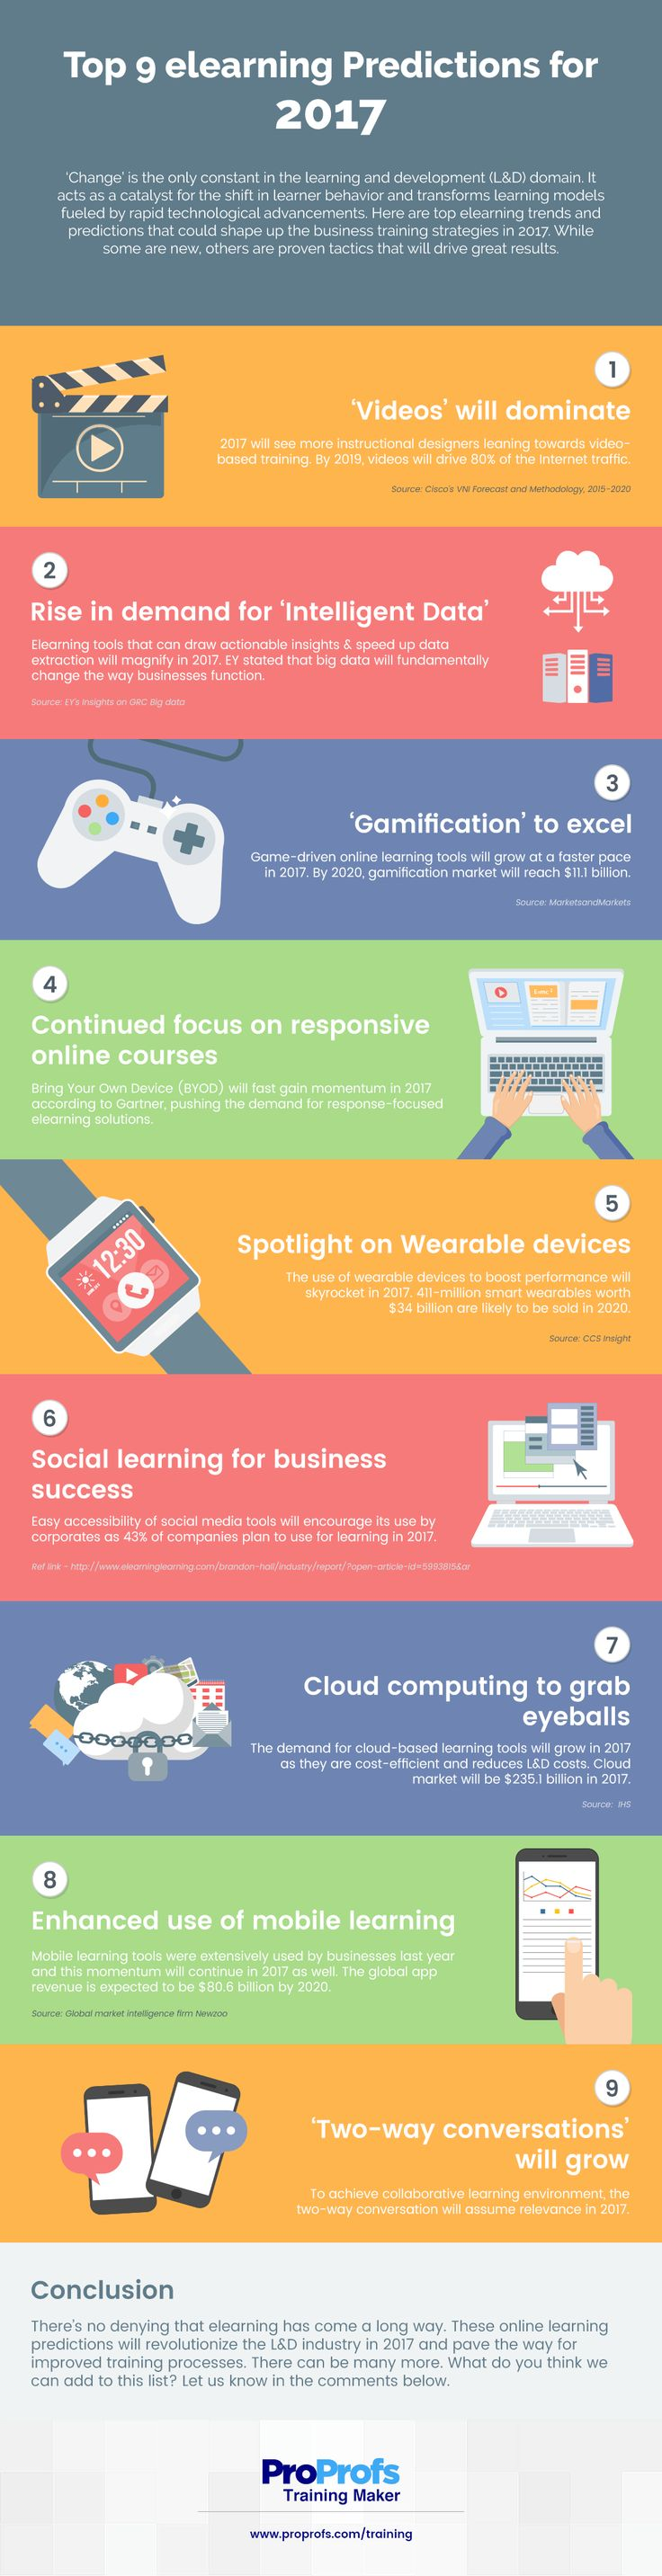 Top 9 eLearning Predictions for 2017 Infographic - http://elearninginfographics.com/top-9-elearning-predictions-2017-infographic/